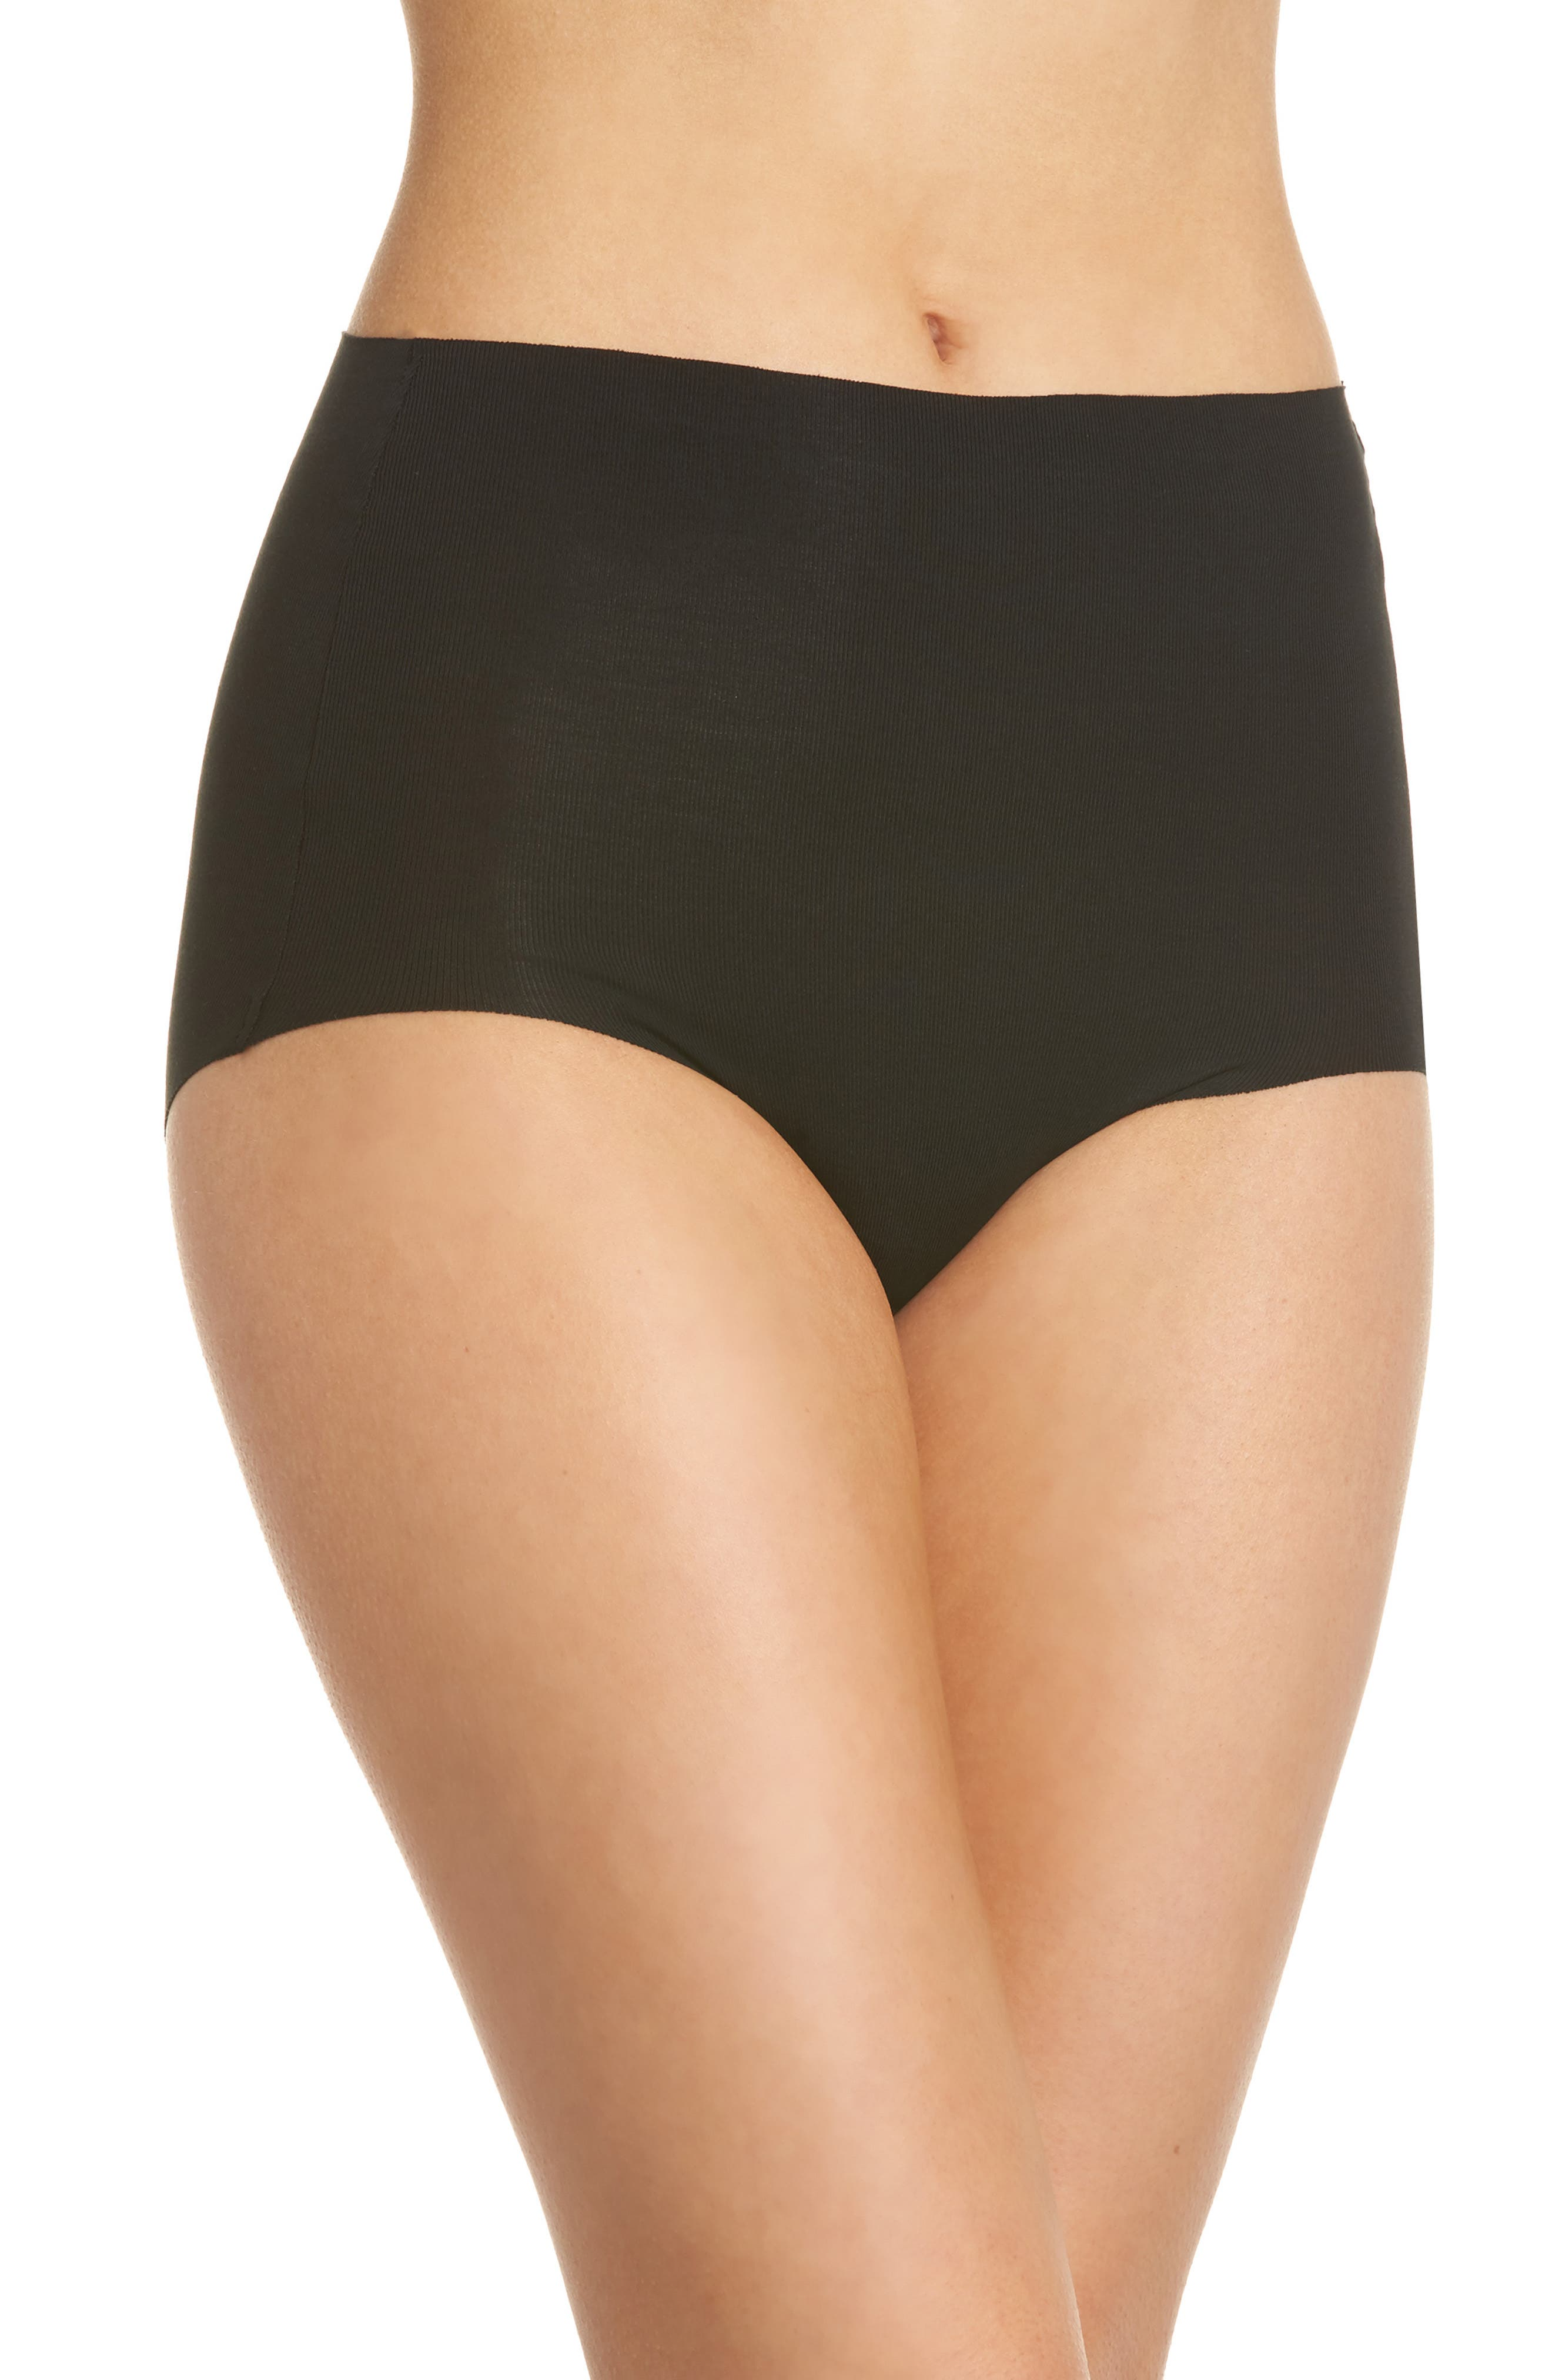 WACOAL, Beyond Naked High Waist Briefs, Main thumbnail 1, color, BLACK